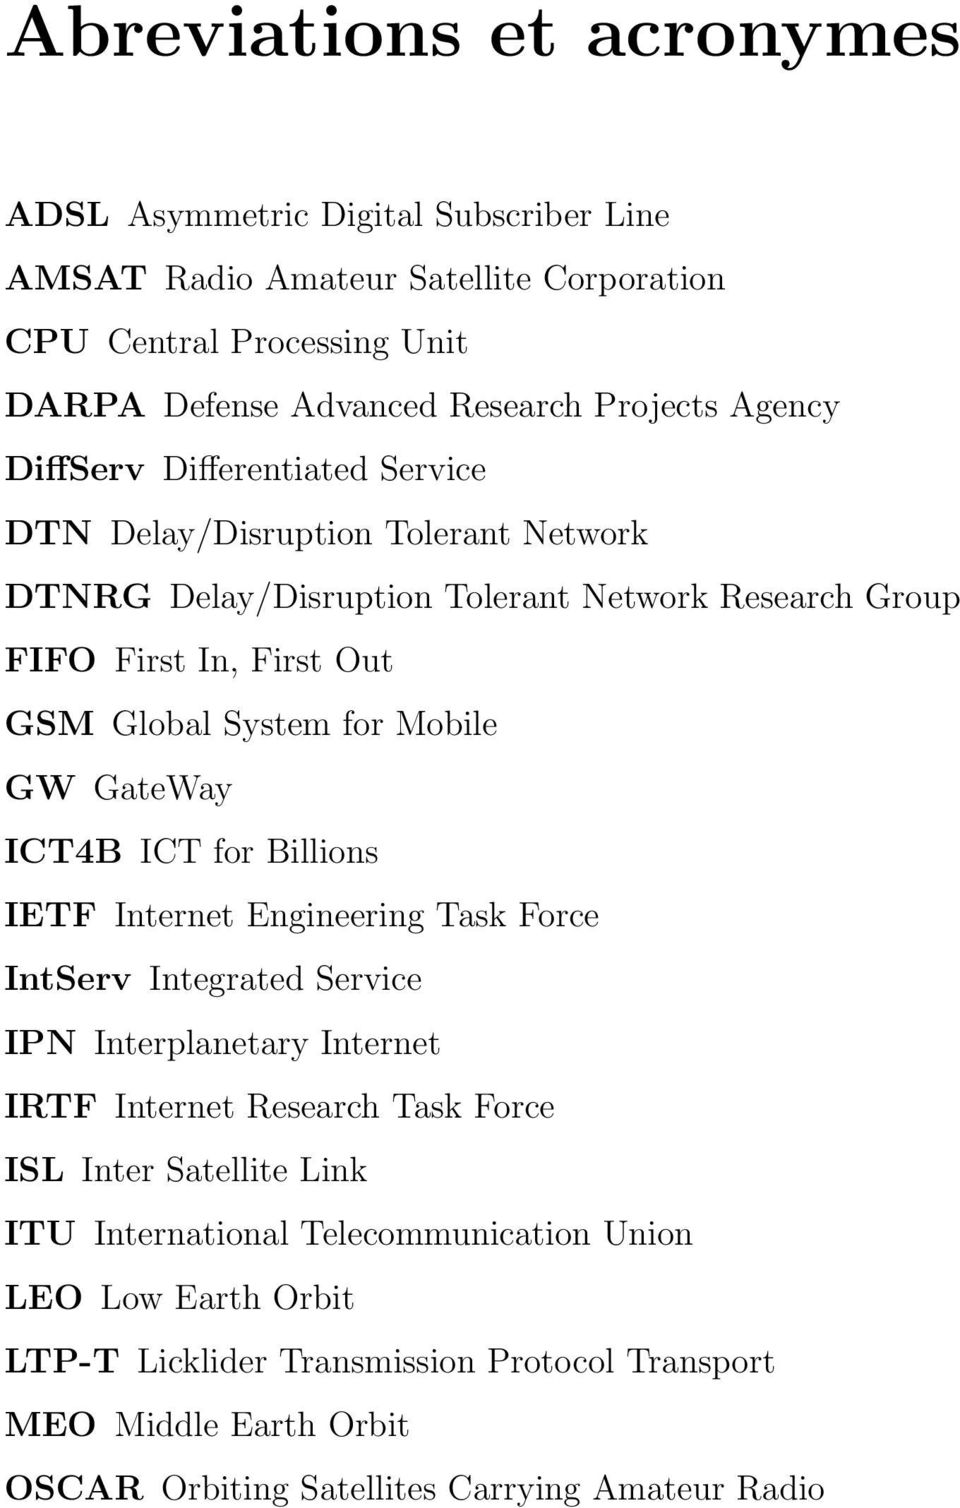 Mobile GW GateWay ICT4B ICT for Billions IETF Internet Engineering Task Force IntServ Integrated Service IPN Interplanetary Internet IRTF Internet Research Task Force ISL Inter